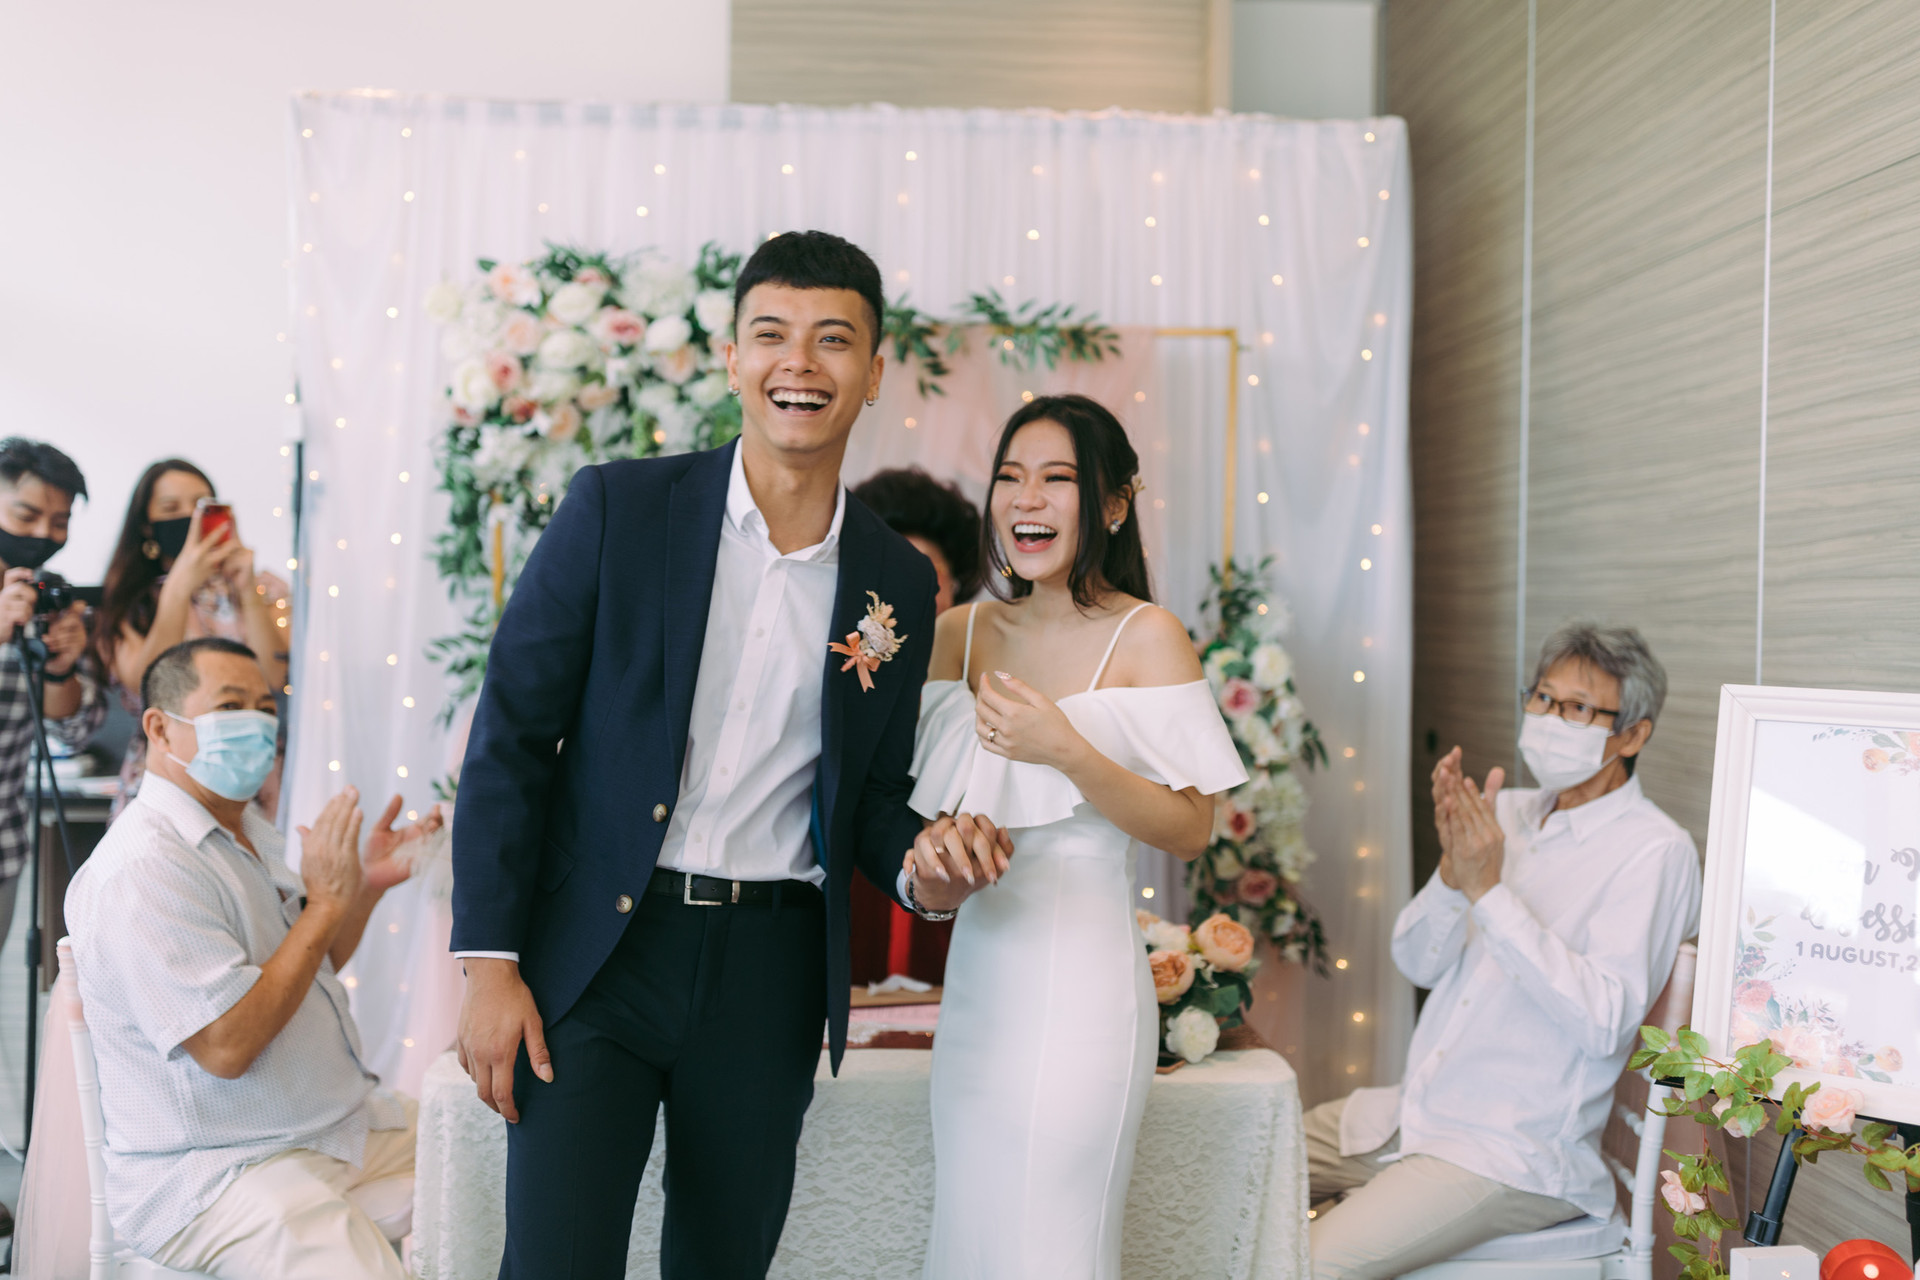 boonheng and jessica-242.jpg